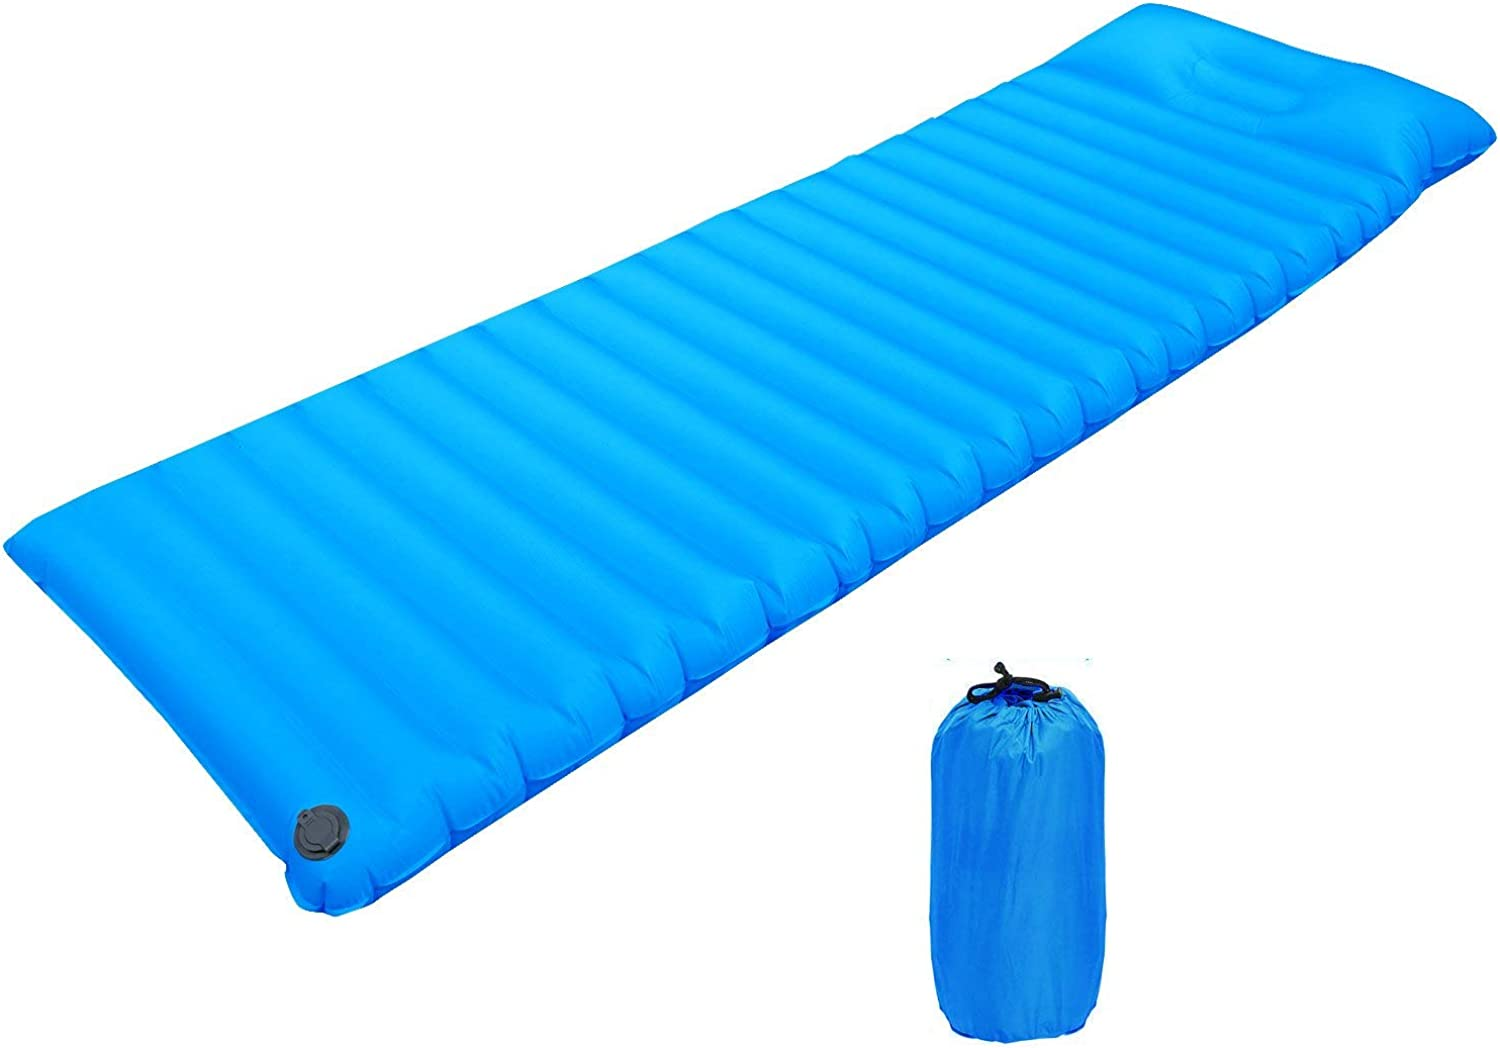 SYF Camping Sleeping Pad, TPU Fast Inflatable Air Mattress Lounger Sofa Sleeping Mats for Adults with Airbag, Portable Waterproof Lazy Bed Sleeping Pad for Hiking Traveling Pool Camping Beach Park A+